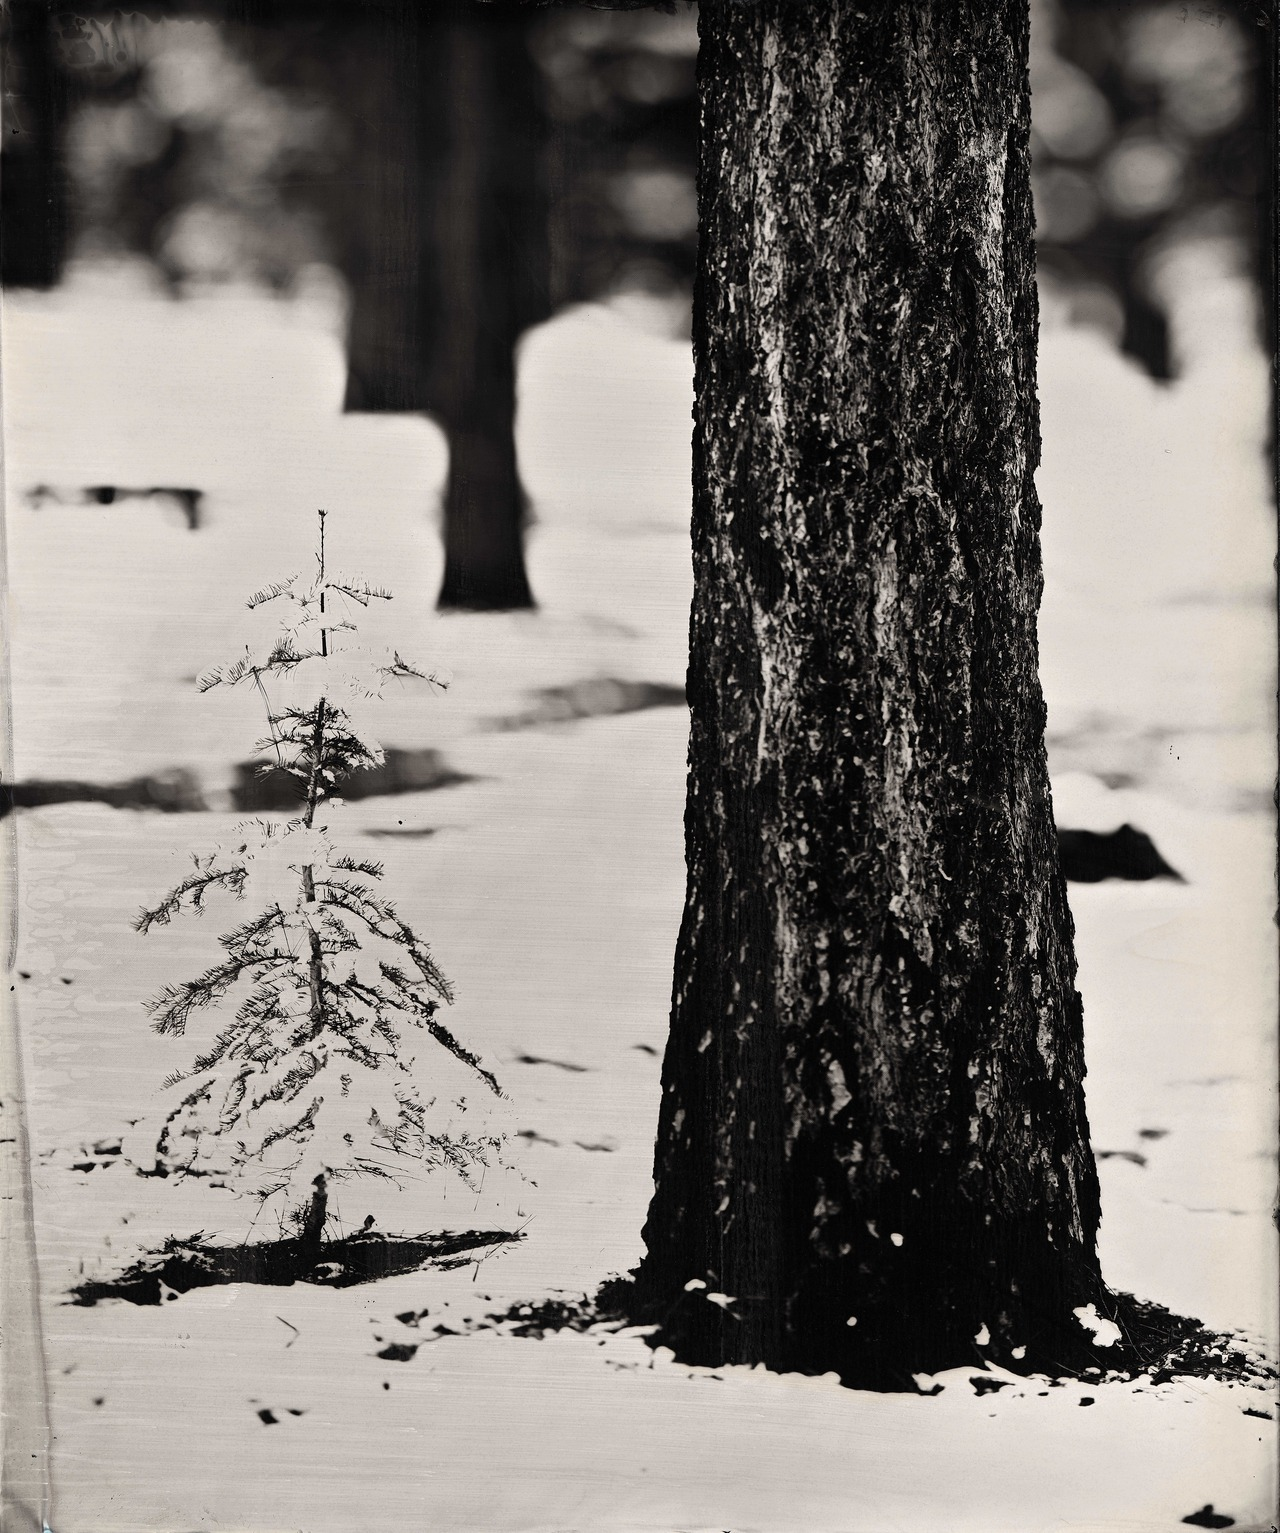 "Ian Ruhter/ Wet Plate Collodion /24"" x30""/ First snow /Lake Tahoe Ca, 11.13.2012"